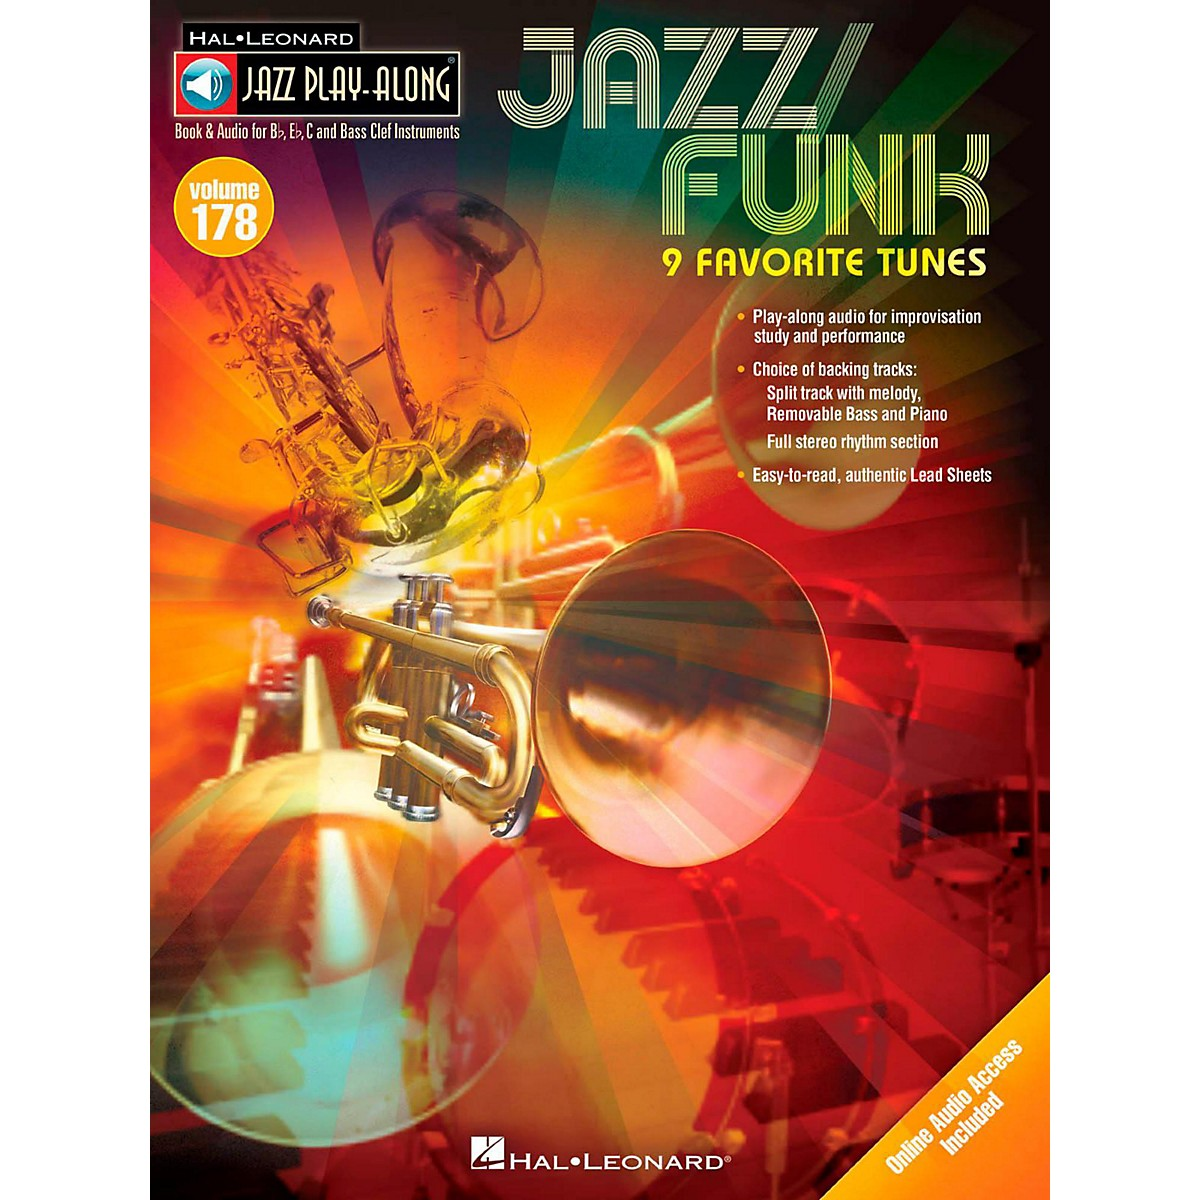 Hal Leonard Jazz/Funk - Jazz Play-Along Volume 178 Book/Online Audio